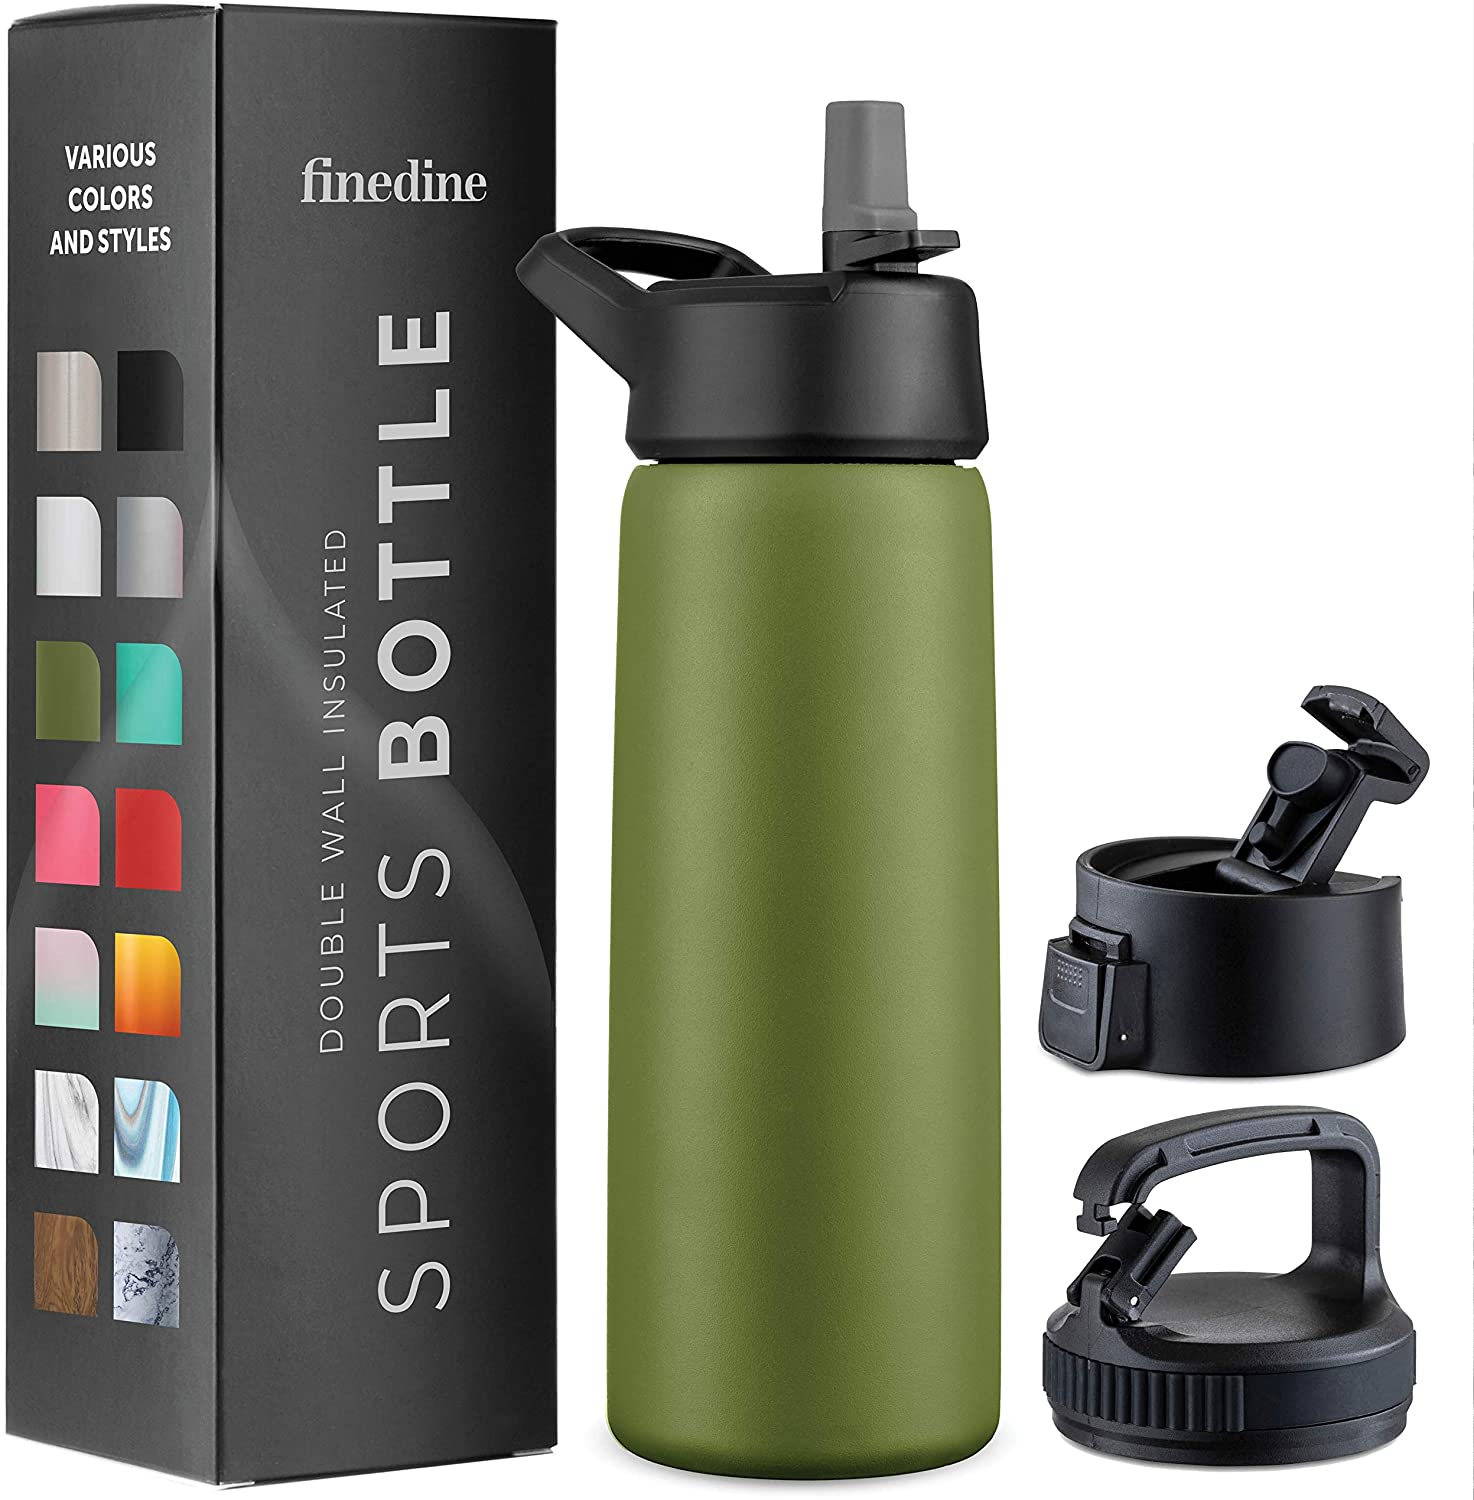 Triple Insulated Stainless Steel Water Bottle With Straw Lid Flip Top Lid Wide Mouth Cap 26 Oz Insulated Water Bottles Keeps Hot And Cold Great For Hiking Biking Army Green